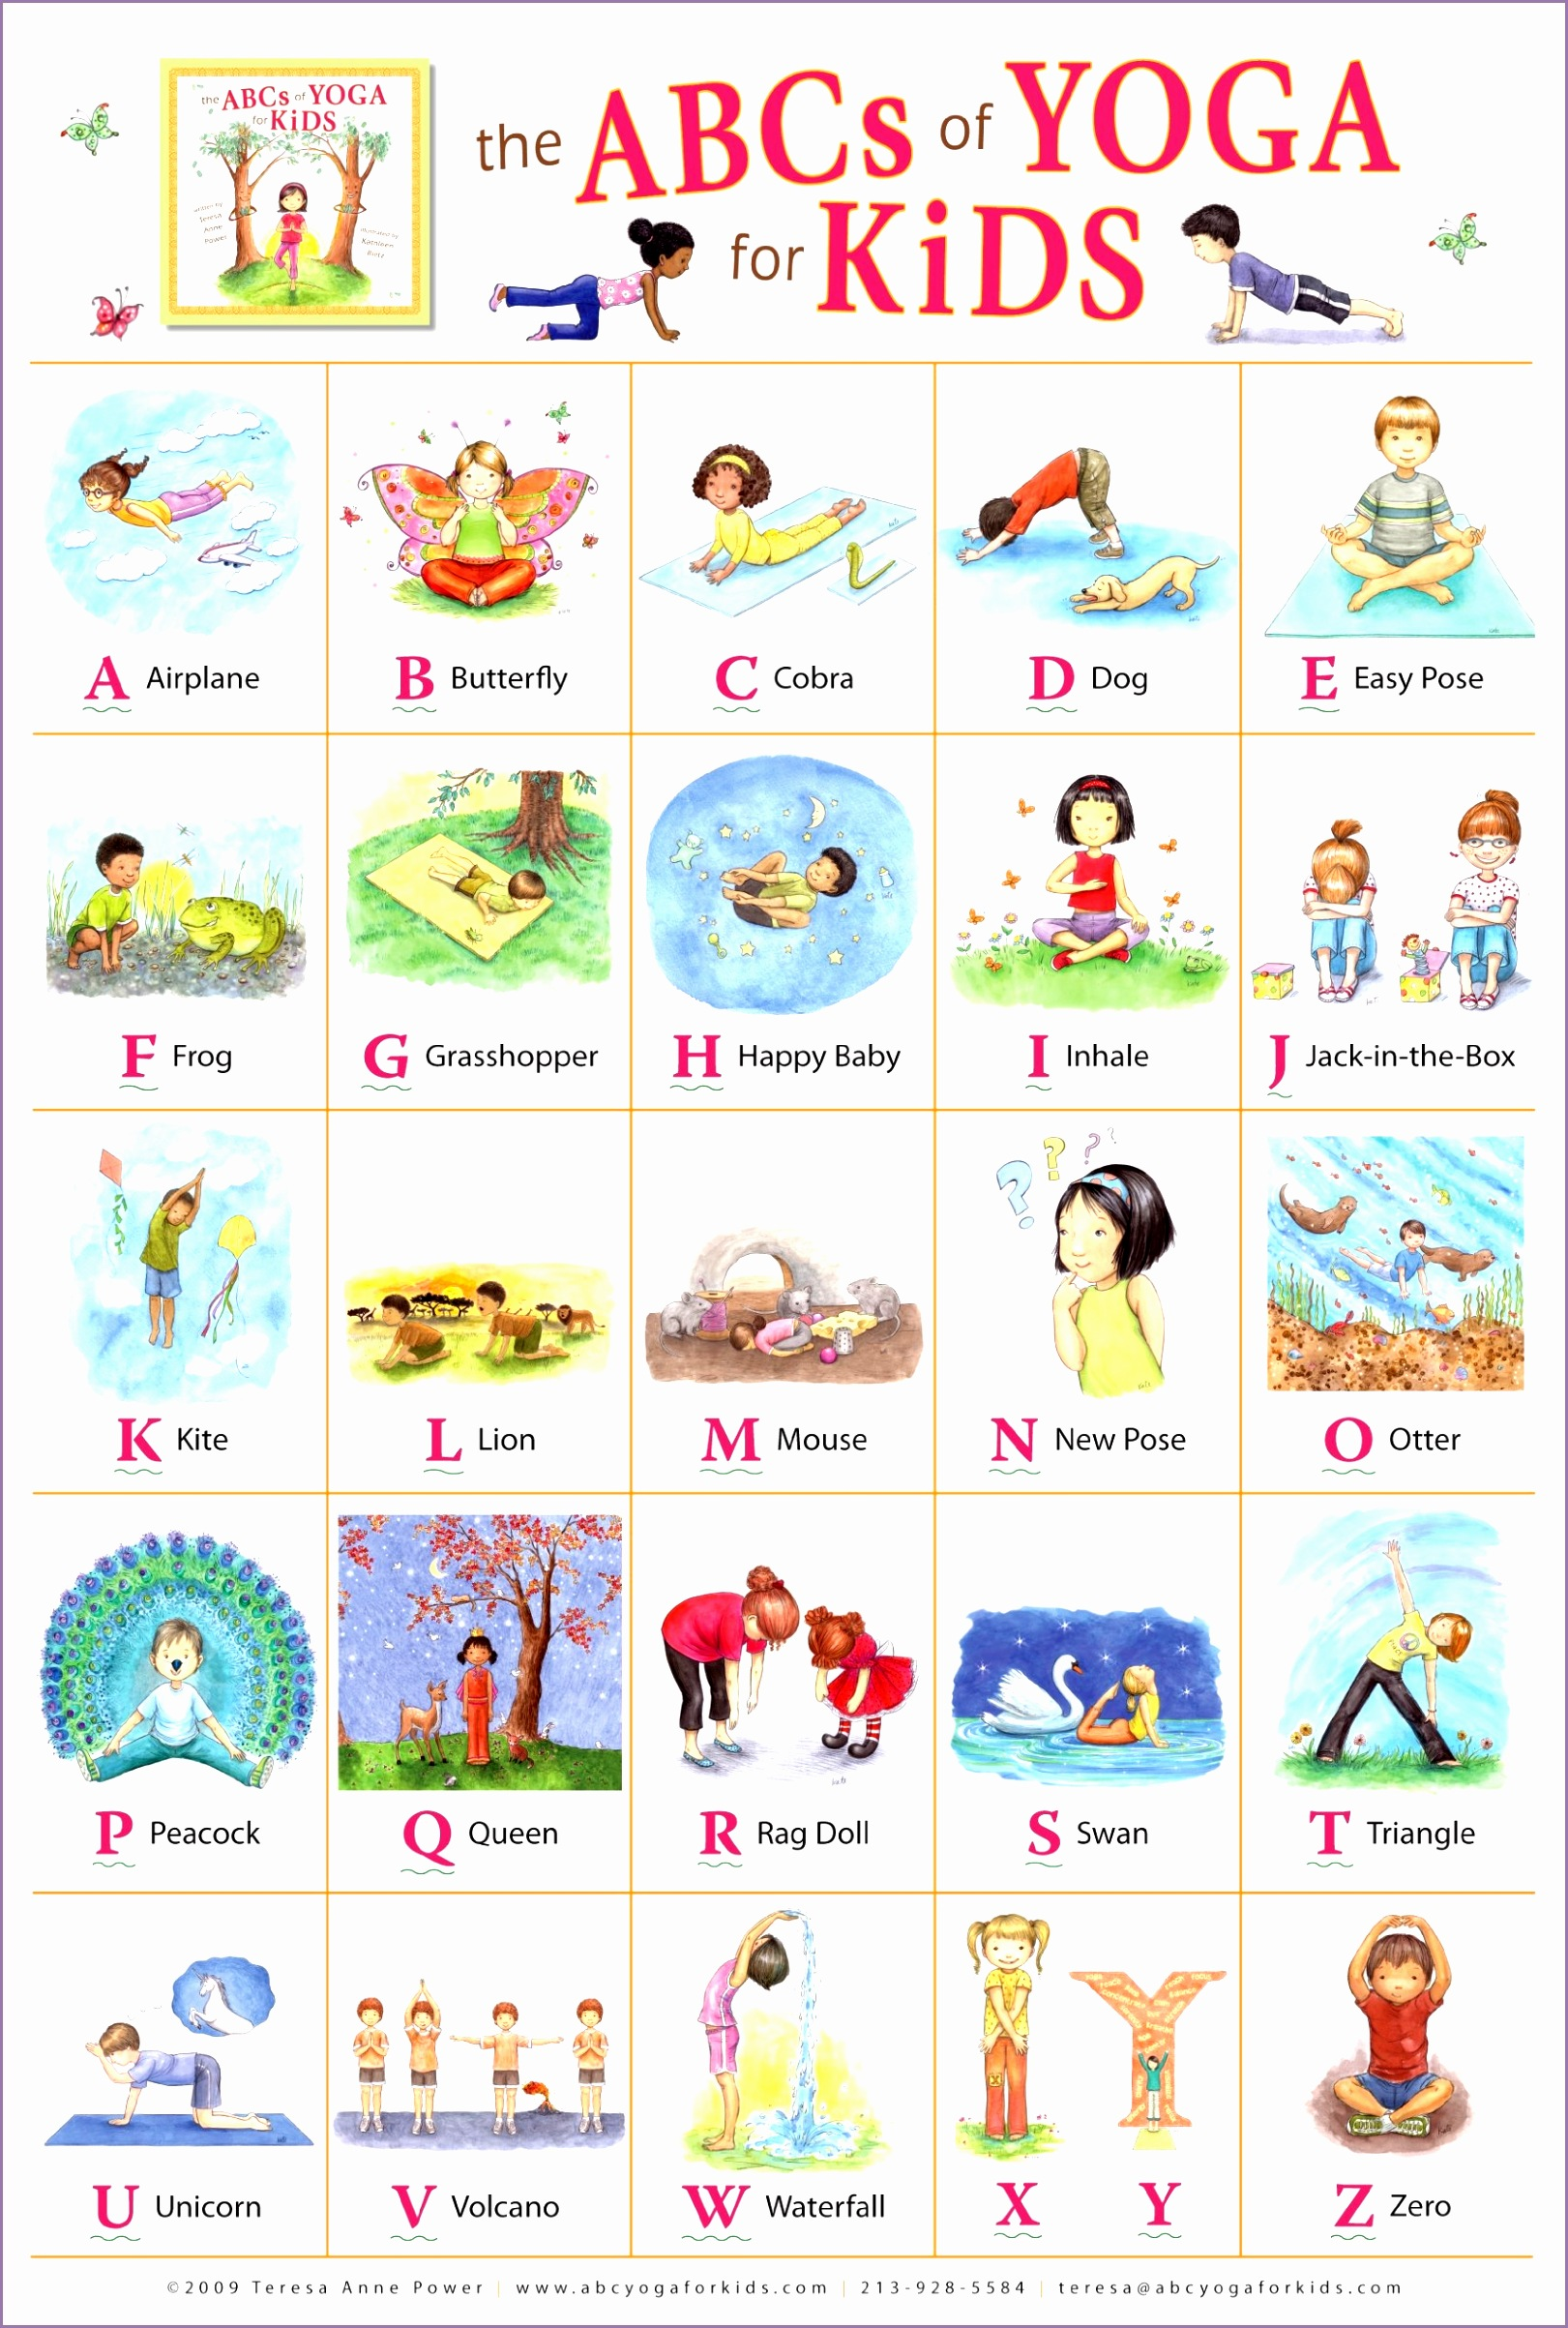 Peaceful Yoga Poses For Kids Printable Marvin Blog